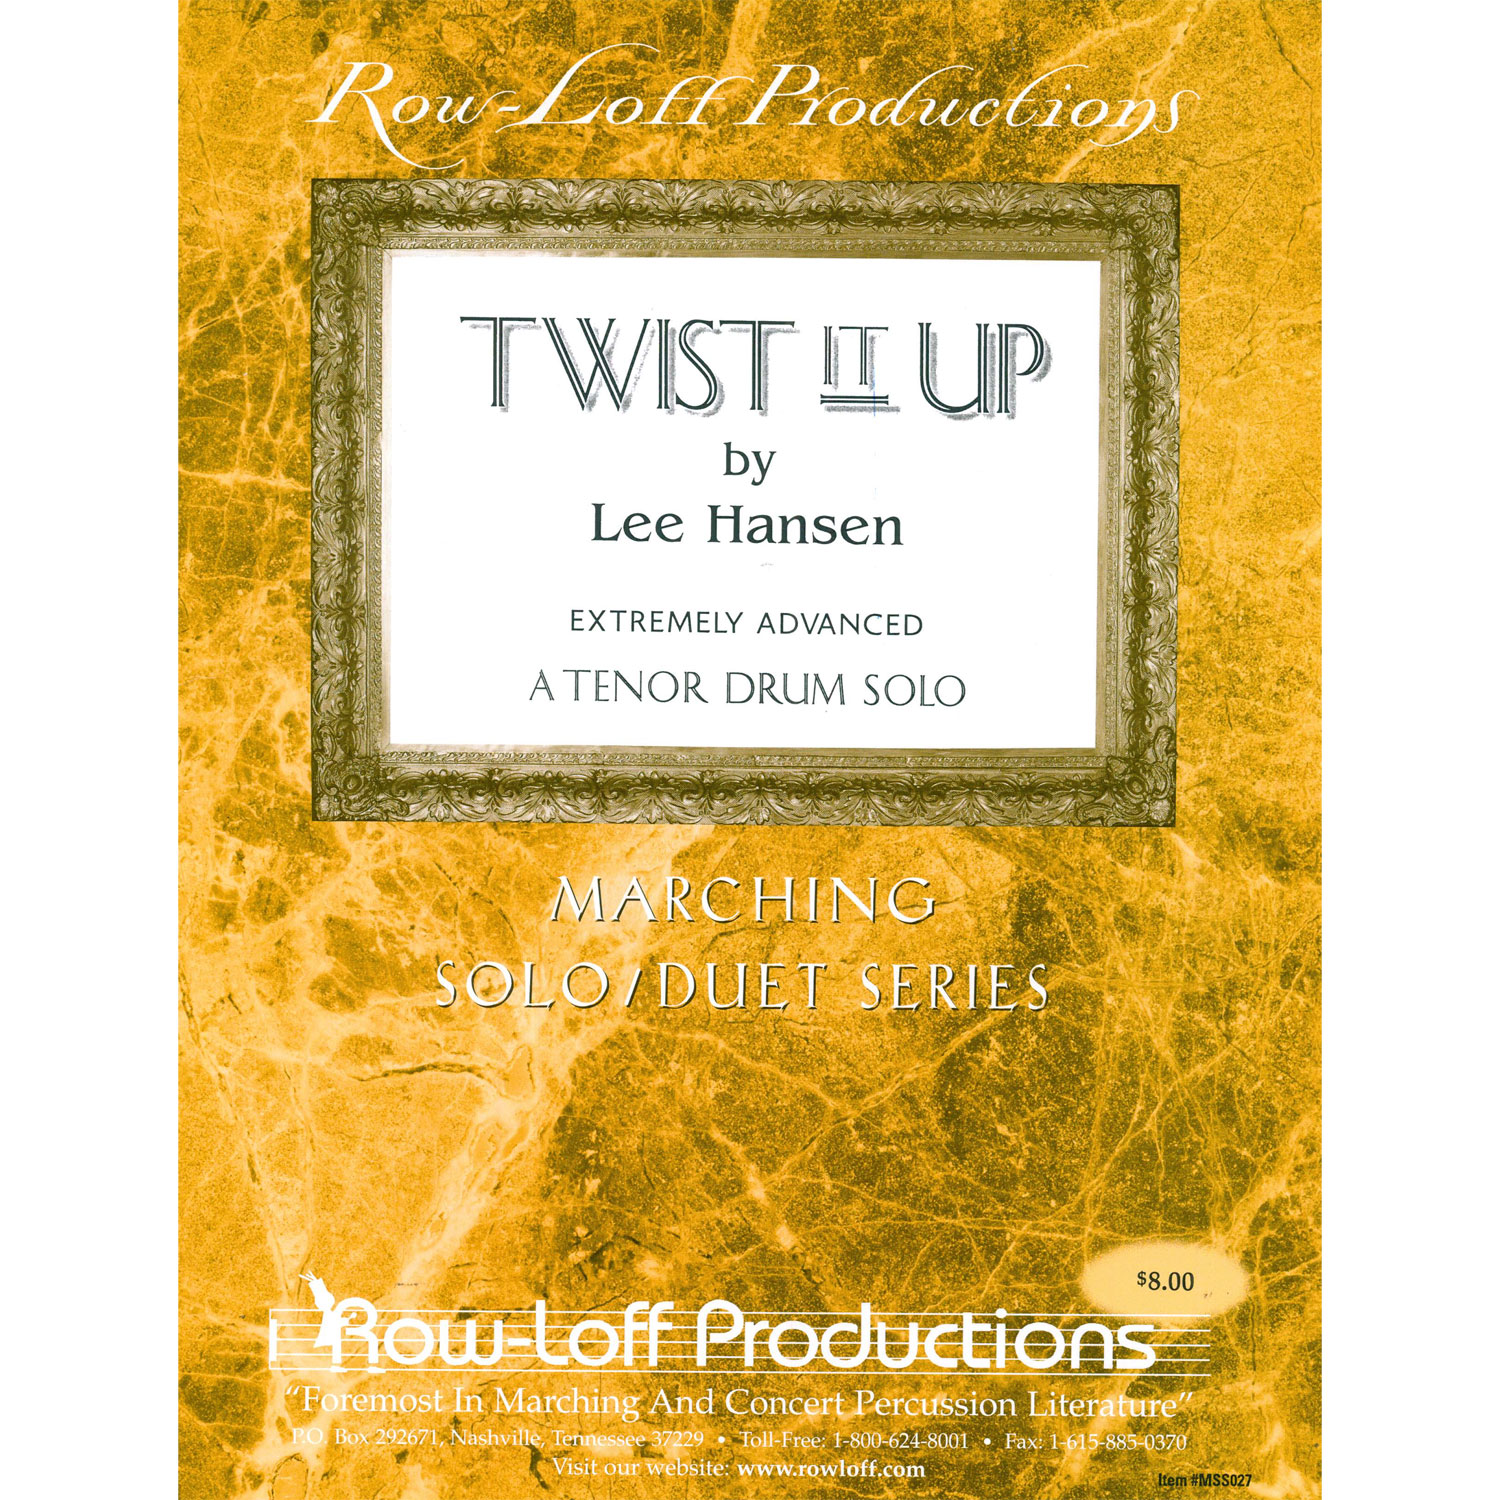 Twist it Up by Lee Hansen